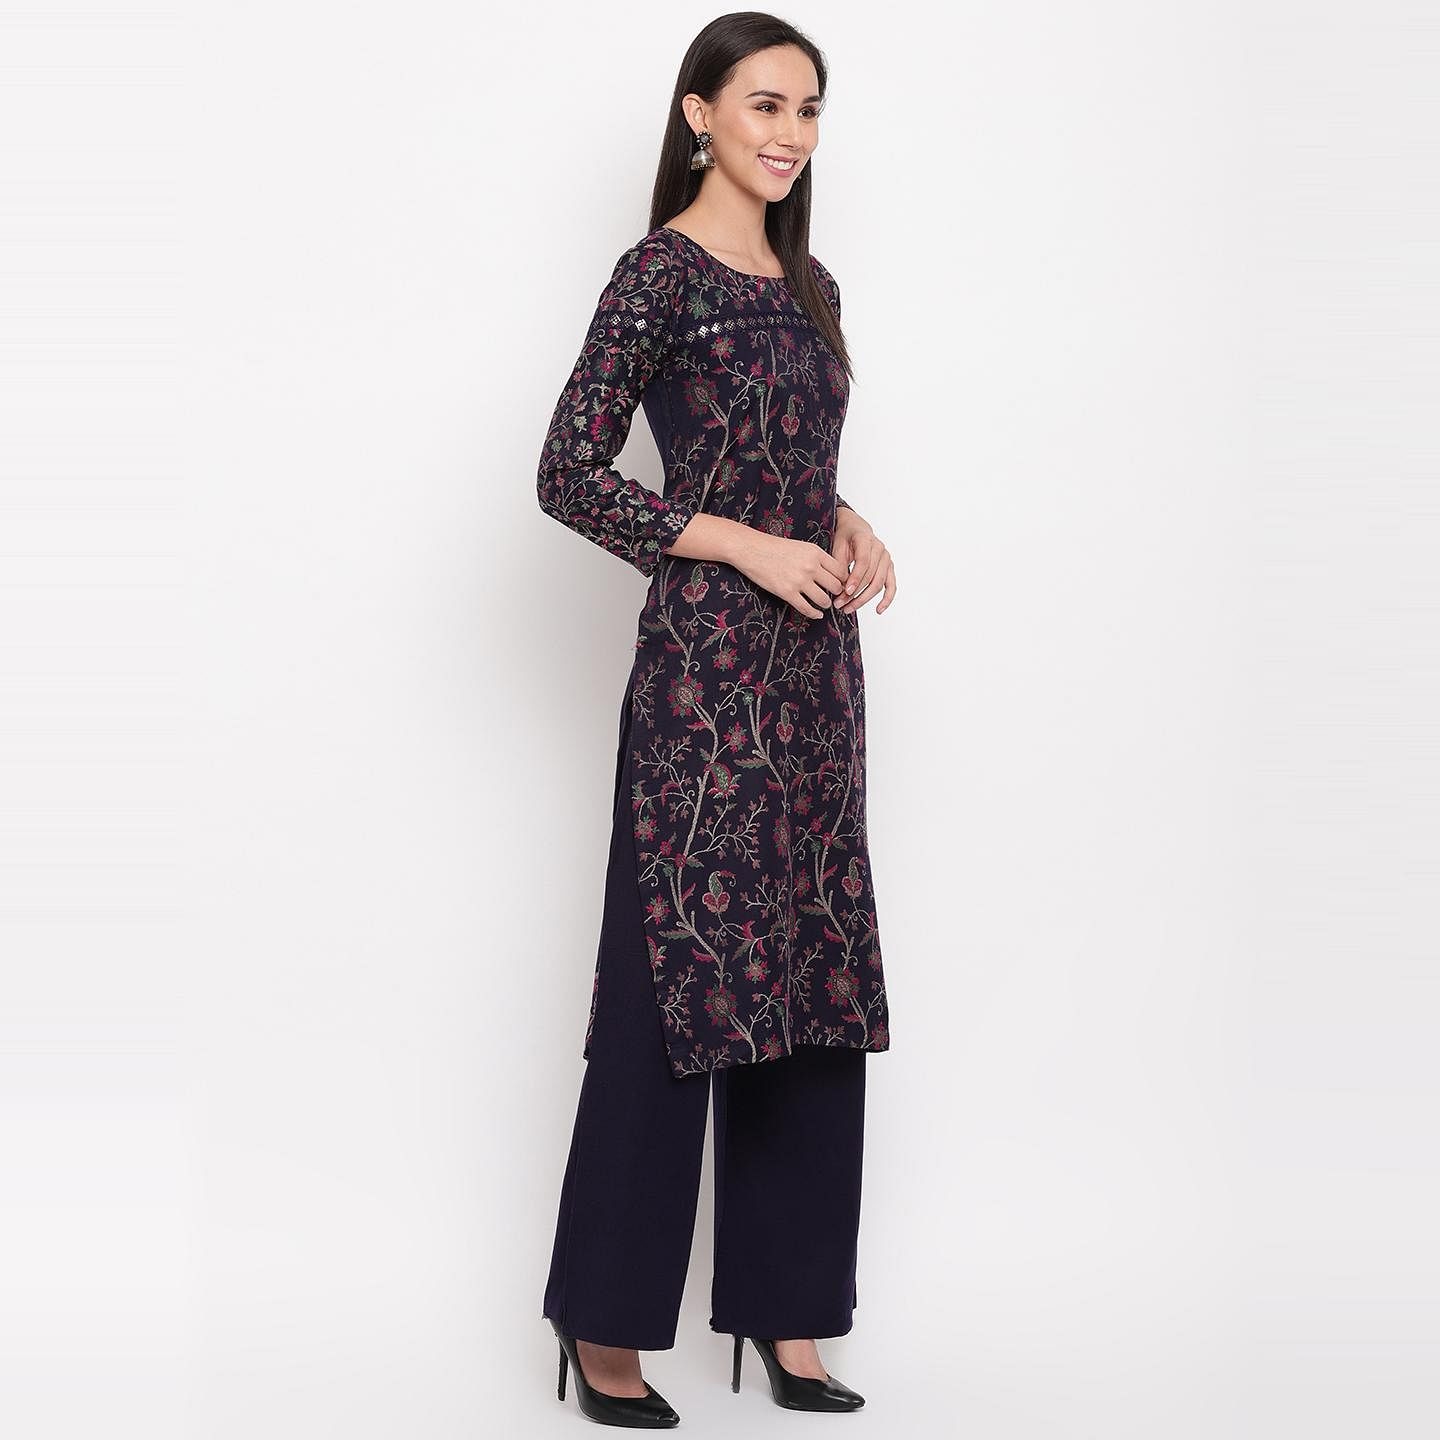 HK Colors Of Fashion - Navy Blue Colored Liva Acrylic Wool Blend Dress Material